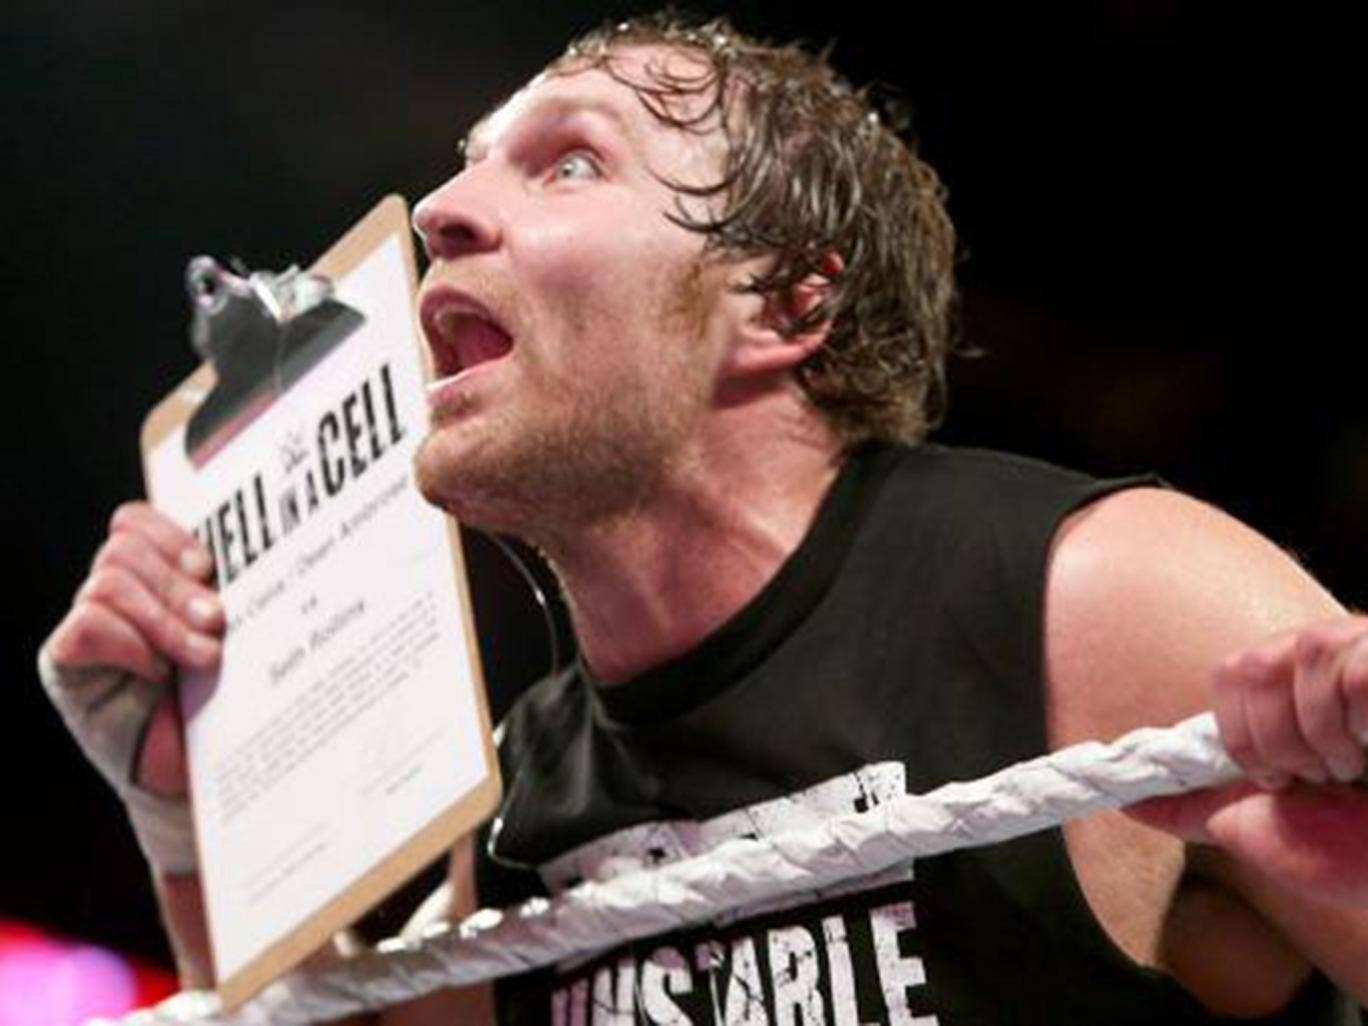 Dean Ambrose grabs the contract to face Seth Rollins at Hell in a Cell - Ambrose